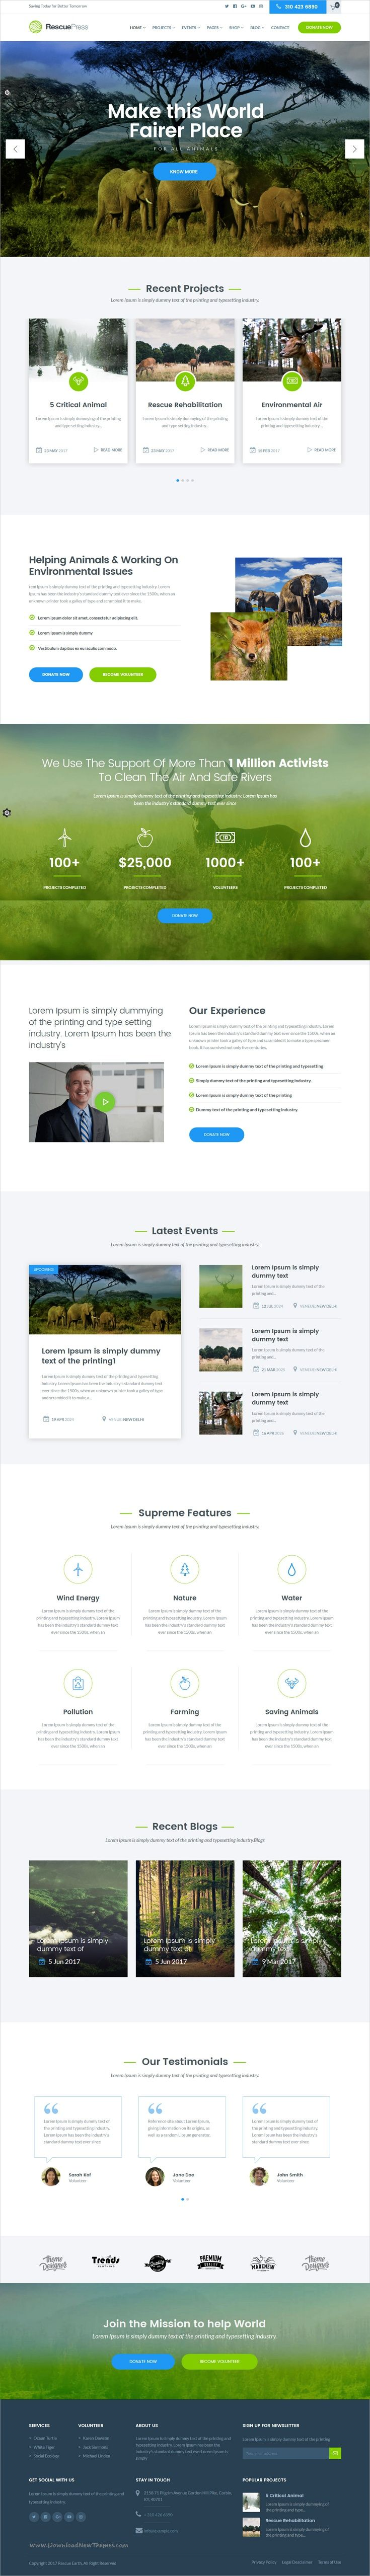 RescuePress is clean and modern design 2in1 responsive #WordPress theme for #environmental protection, charity and #nonprofit organizations website download now > https://themeforest.net/item/rescuepress-save-environment-wordpress-theme/19720435?ref=Datasata